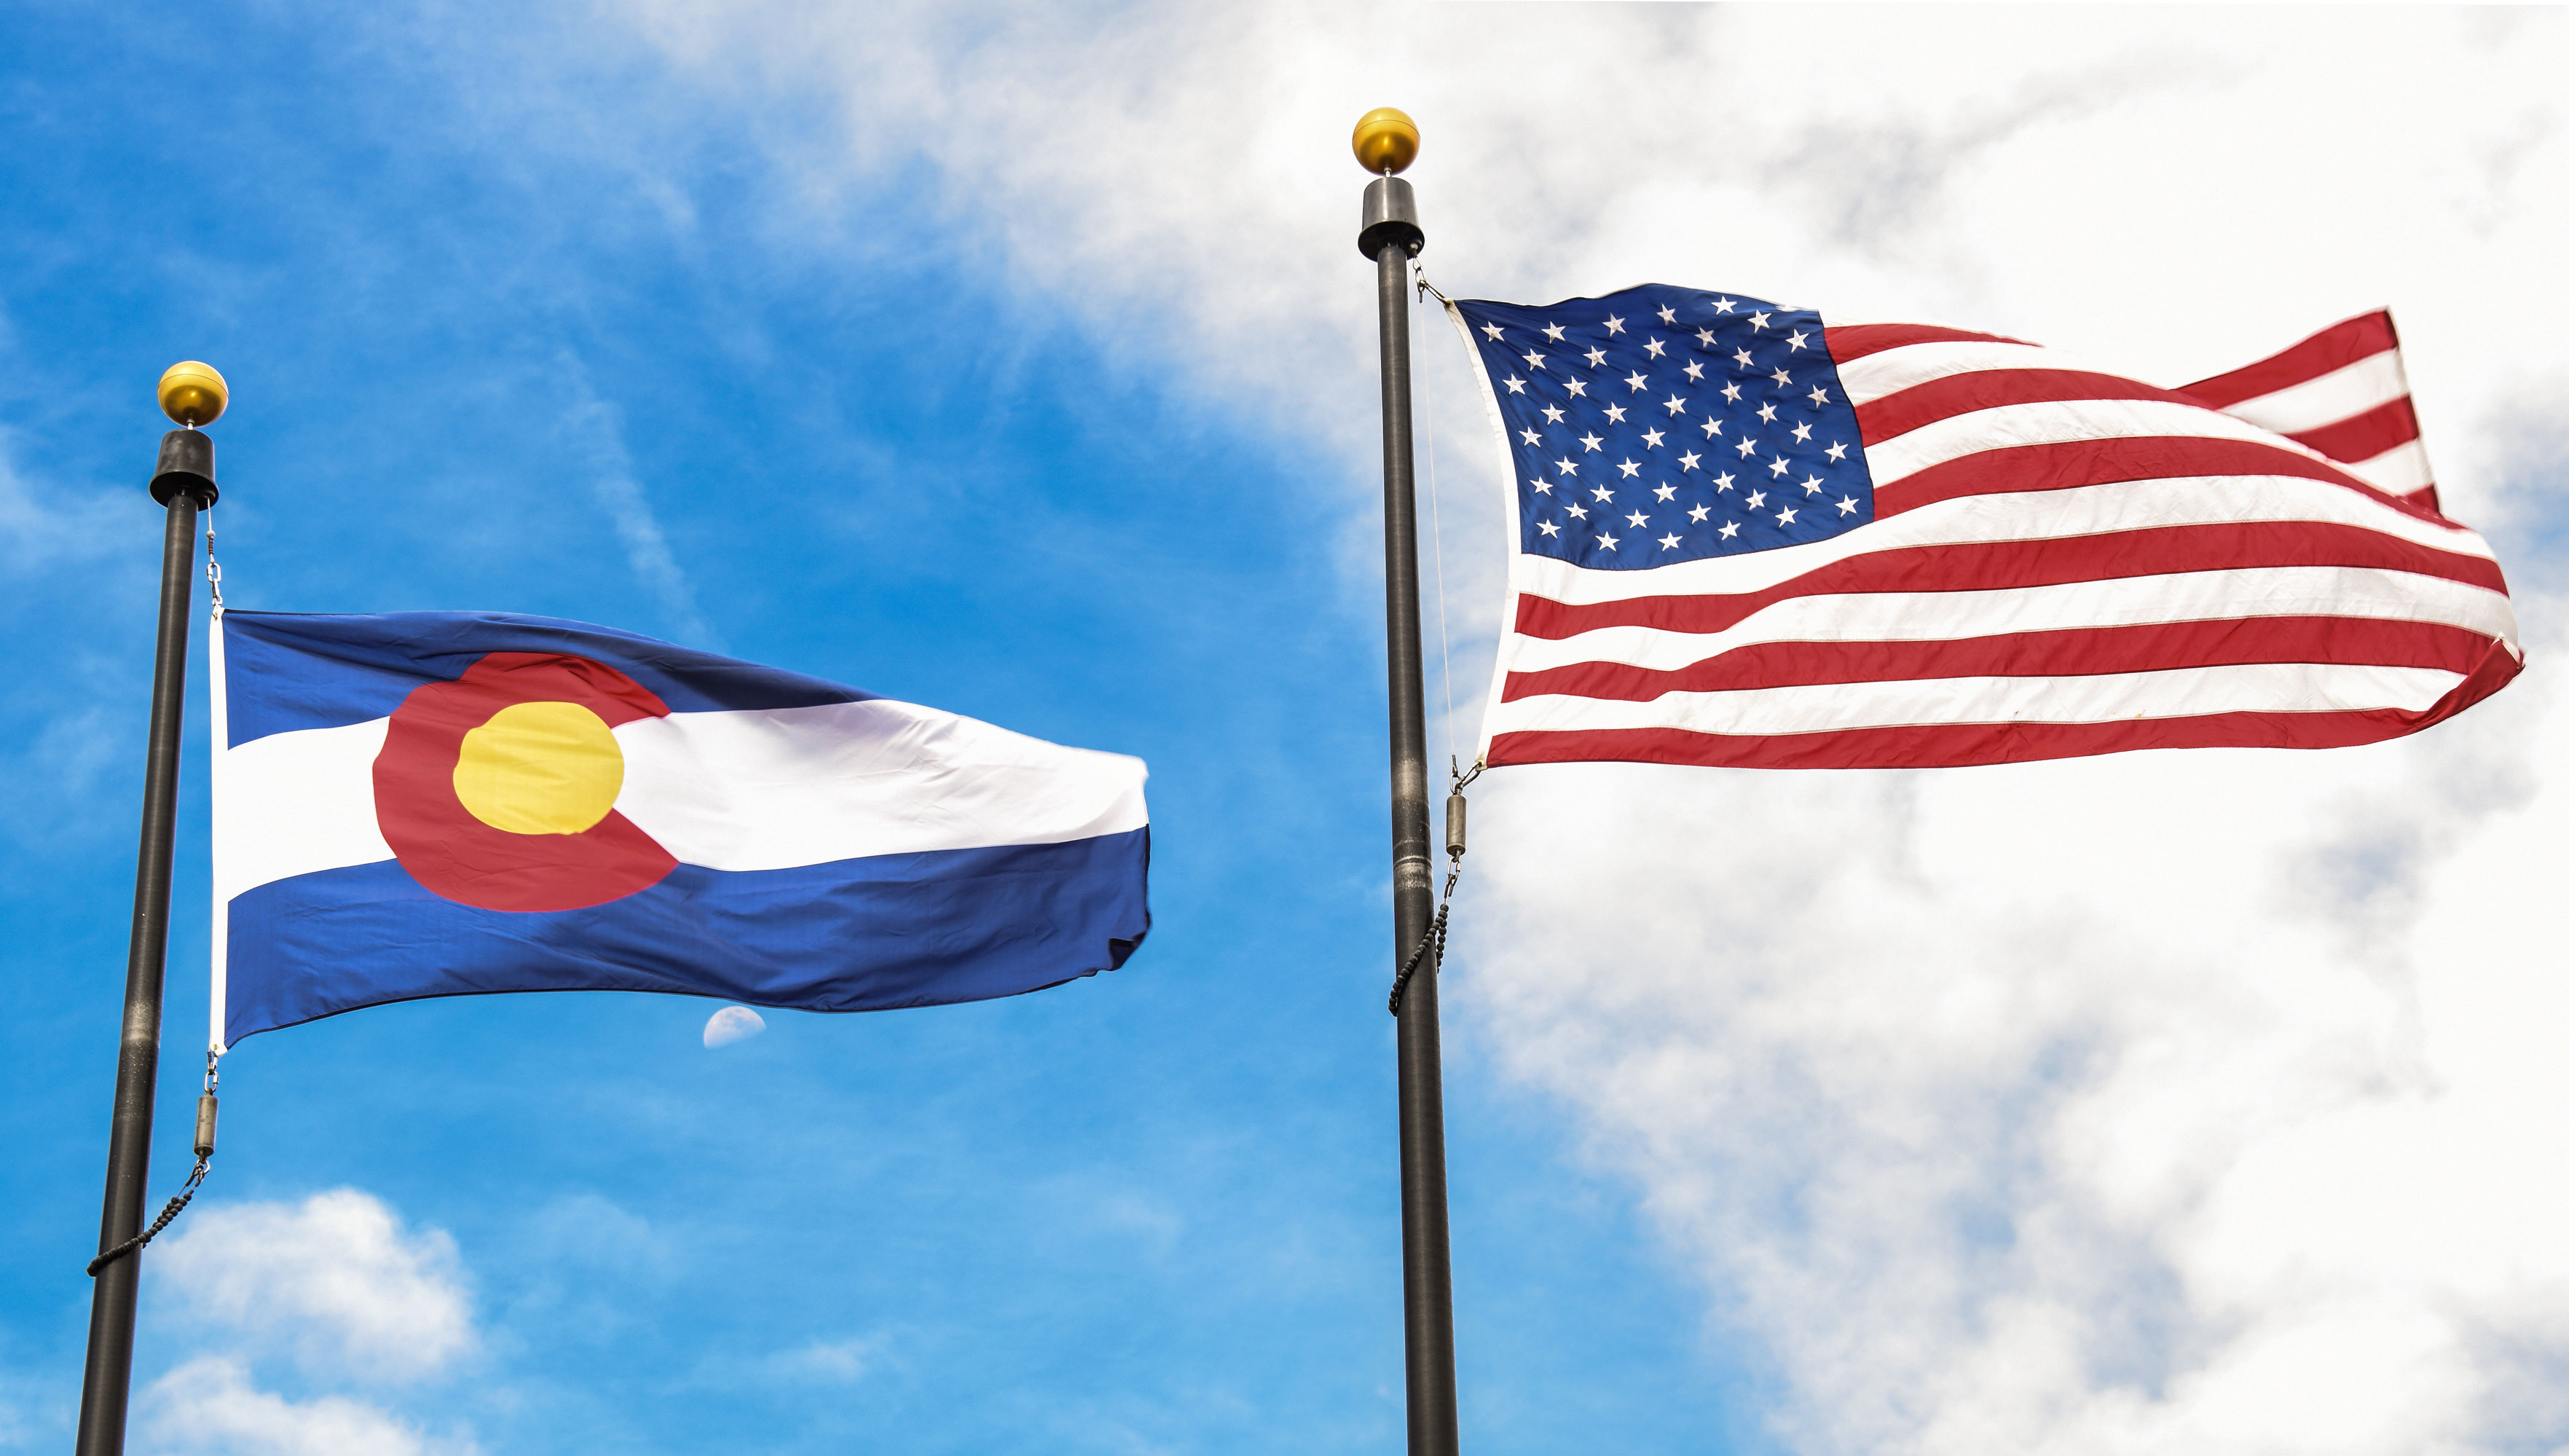 Colorado US flags